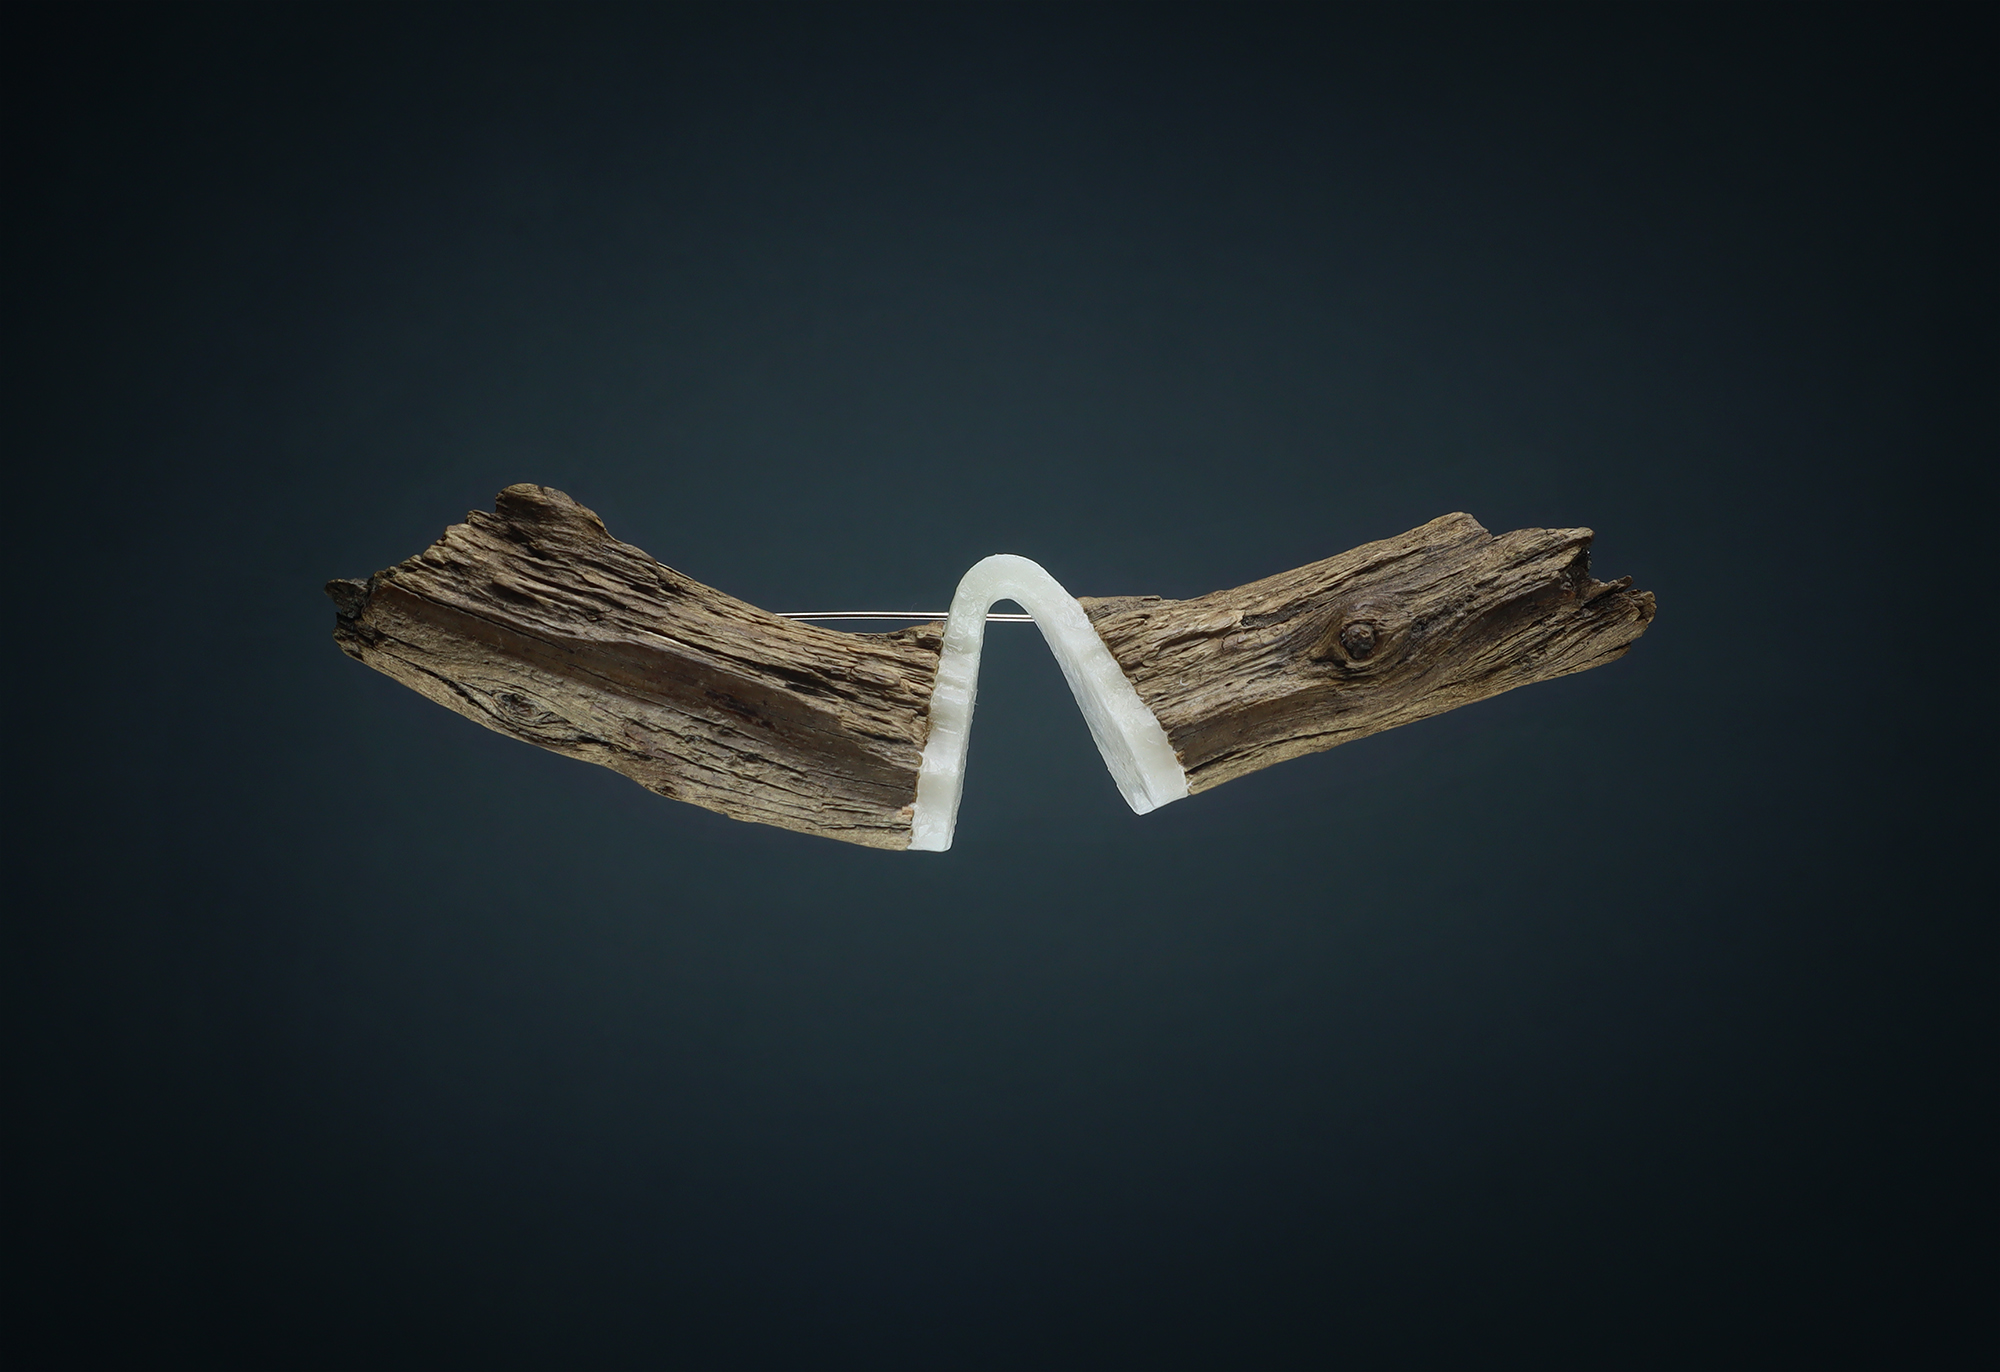 Wiebke Pandikow / beach architecture / brooch / recycled plastic bags, driftwood